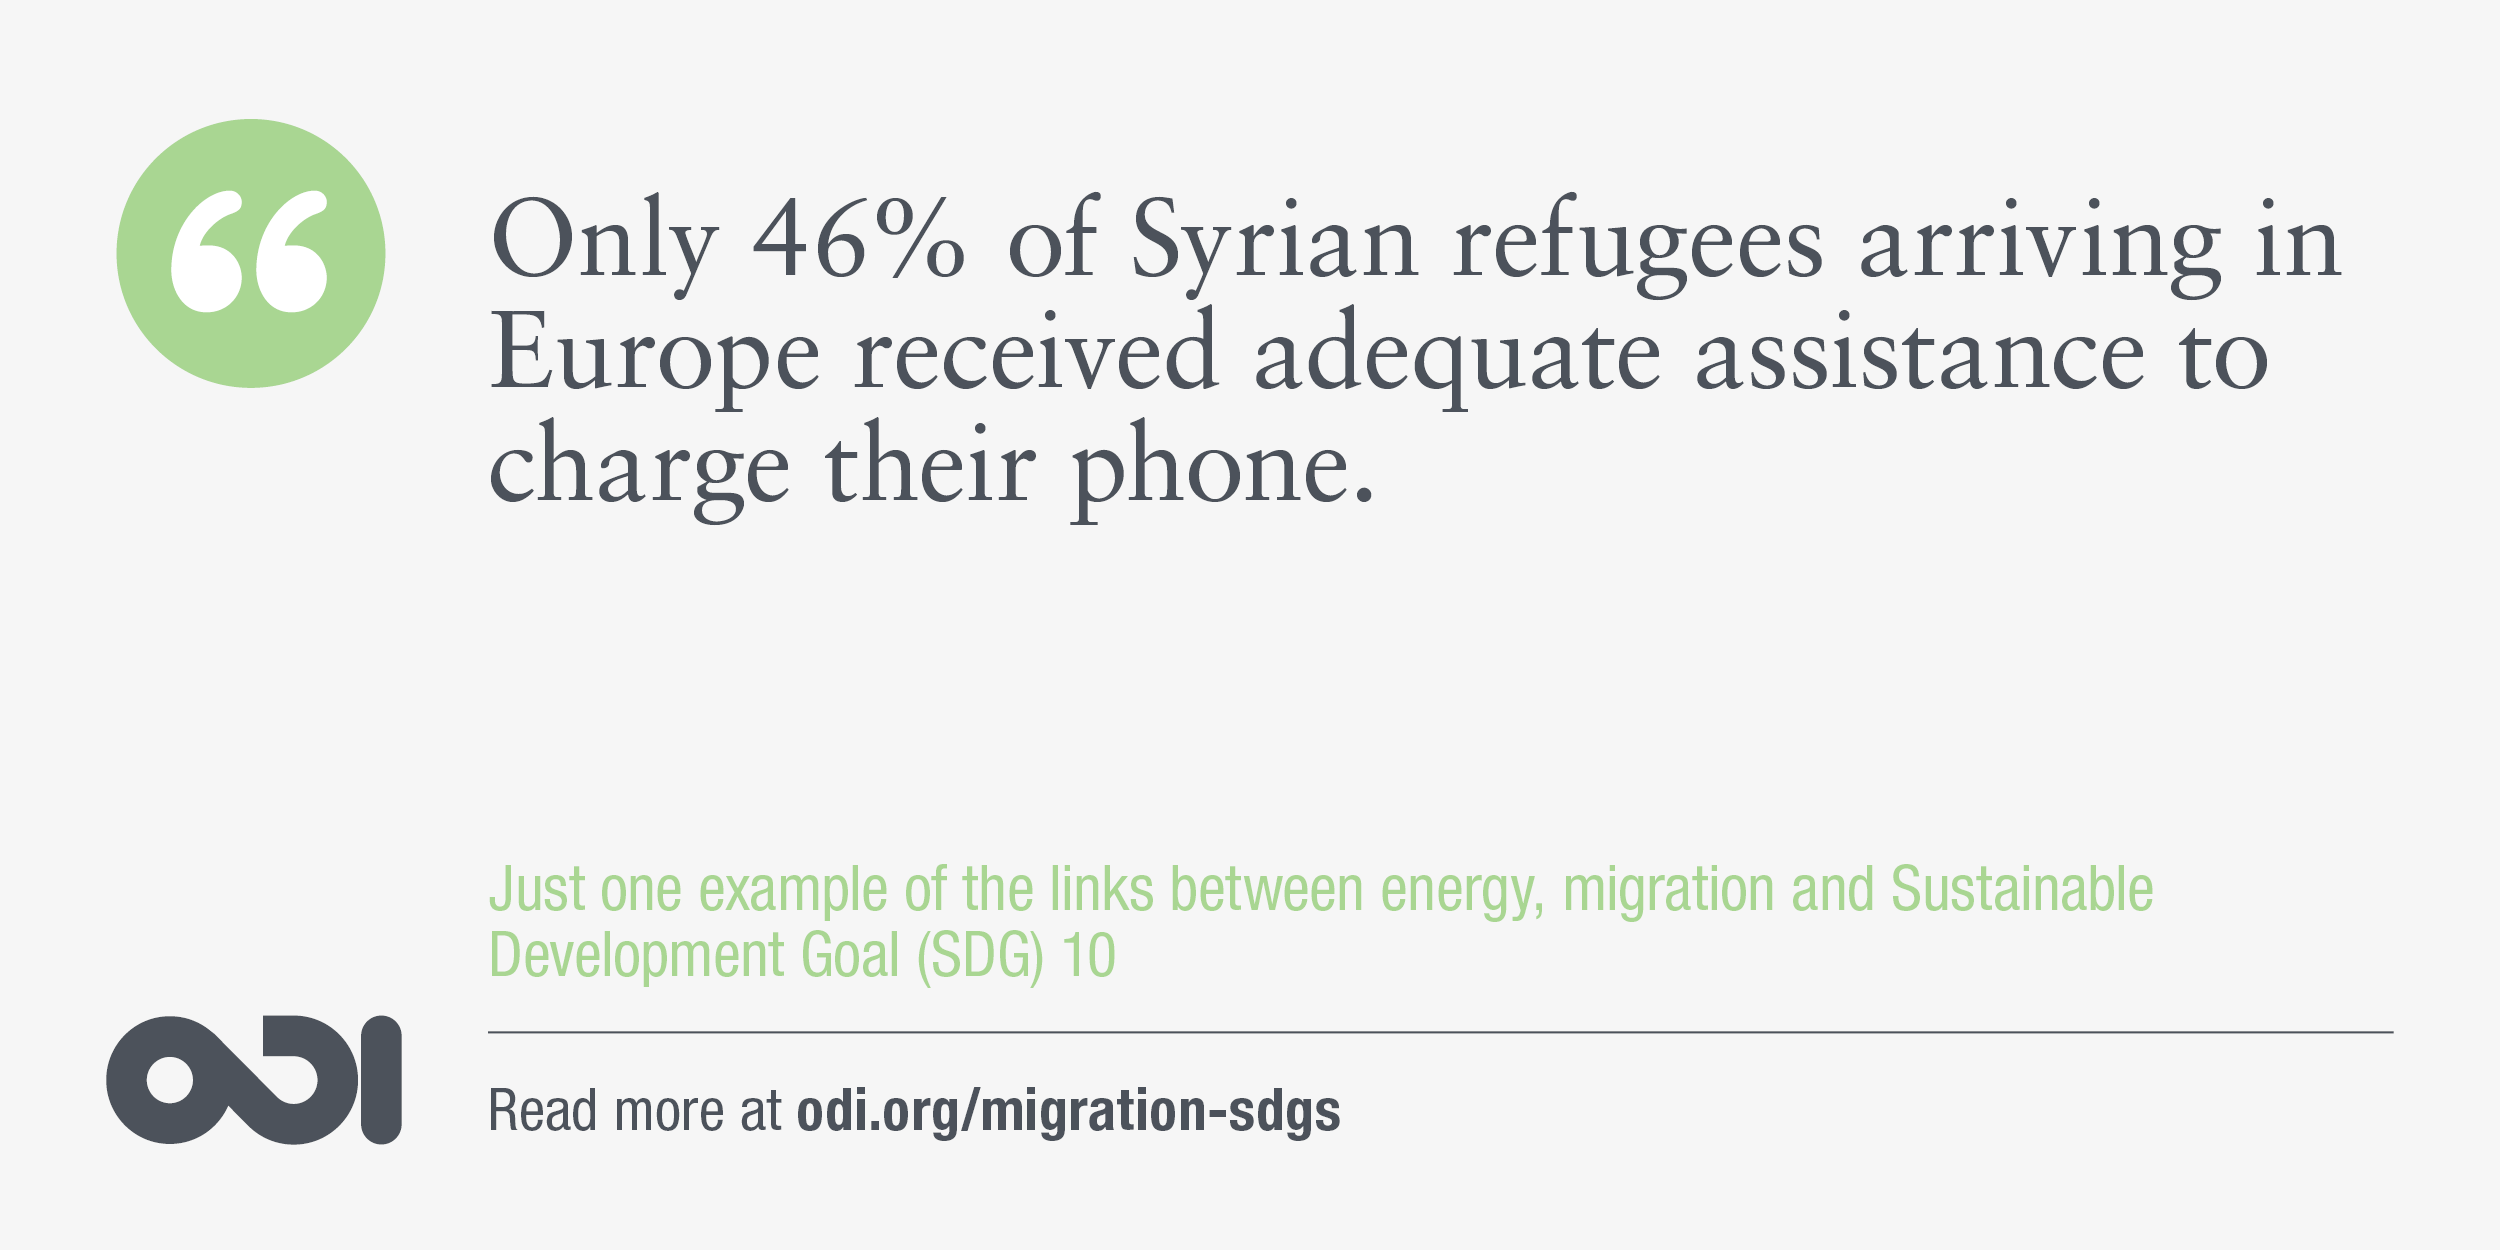 The links between energy, migration and SDG 10.